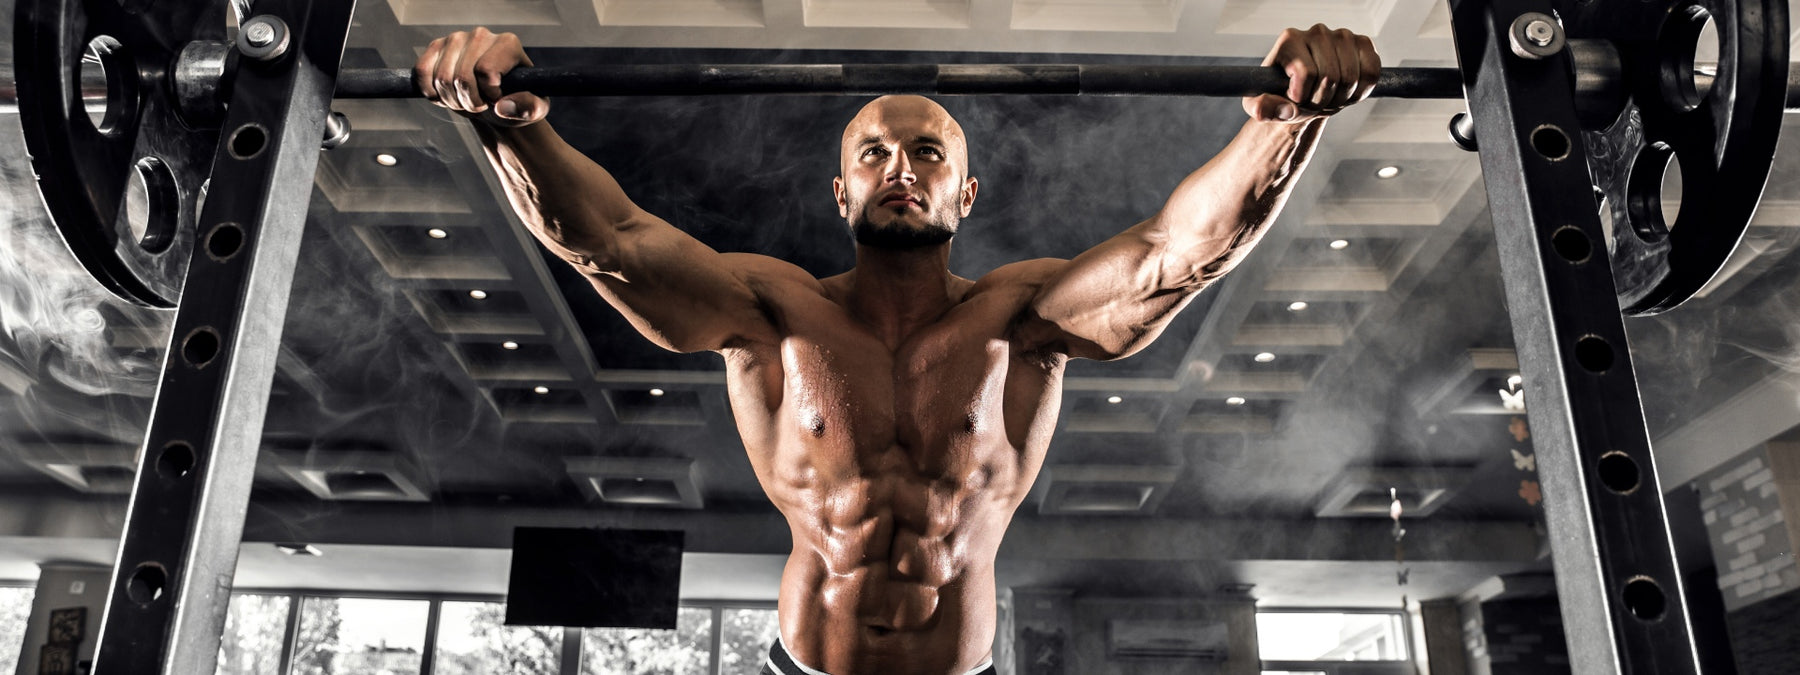 15 Minute Muscle Building Workout Plans - Gains in Minutes!